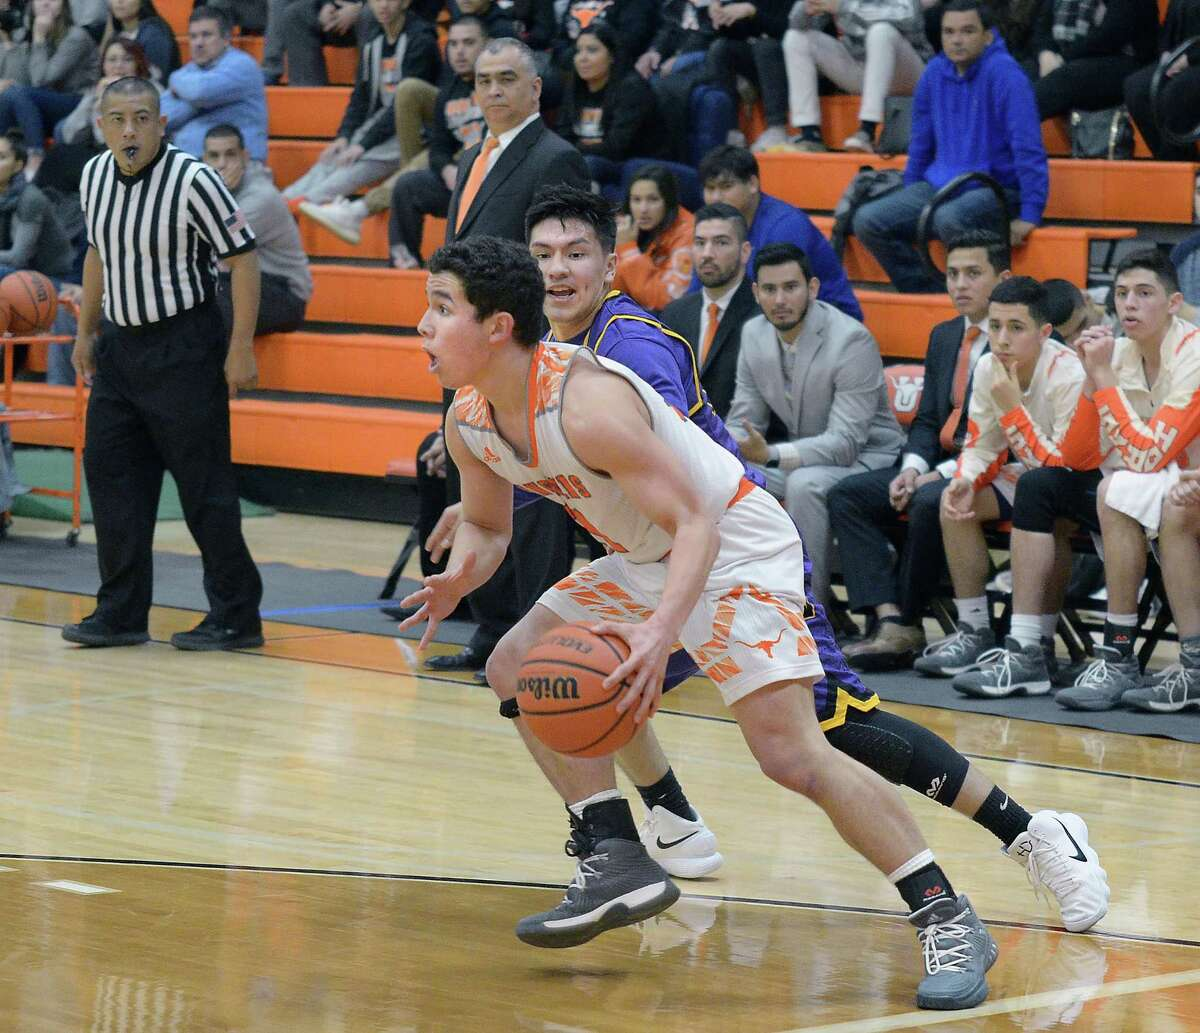 Gabe Gaytan scored 10 points in his final game for United as the Longhorns were eliminated Monday with a 52-48 loss against McAllen Memorial in Roma.